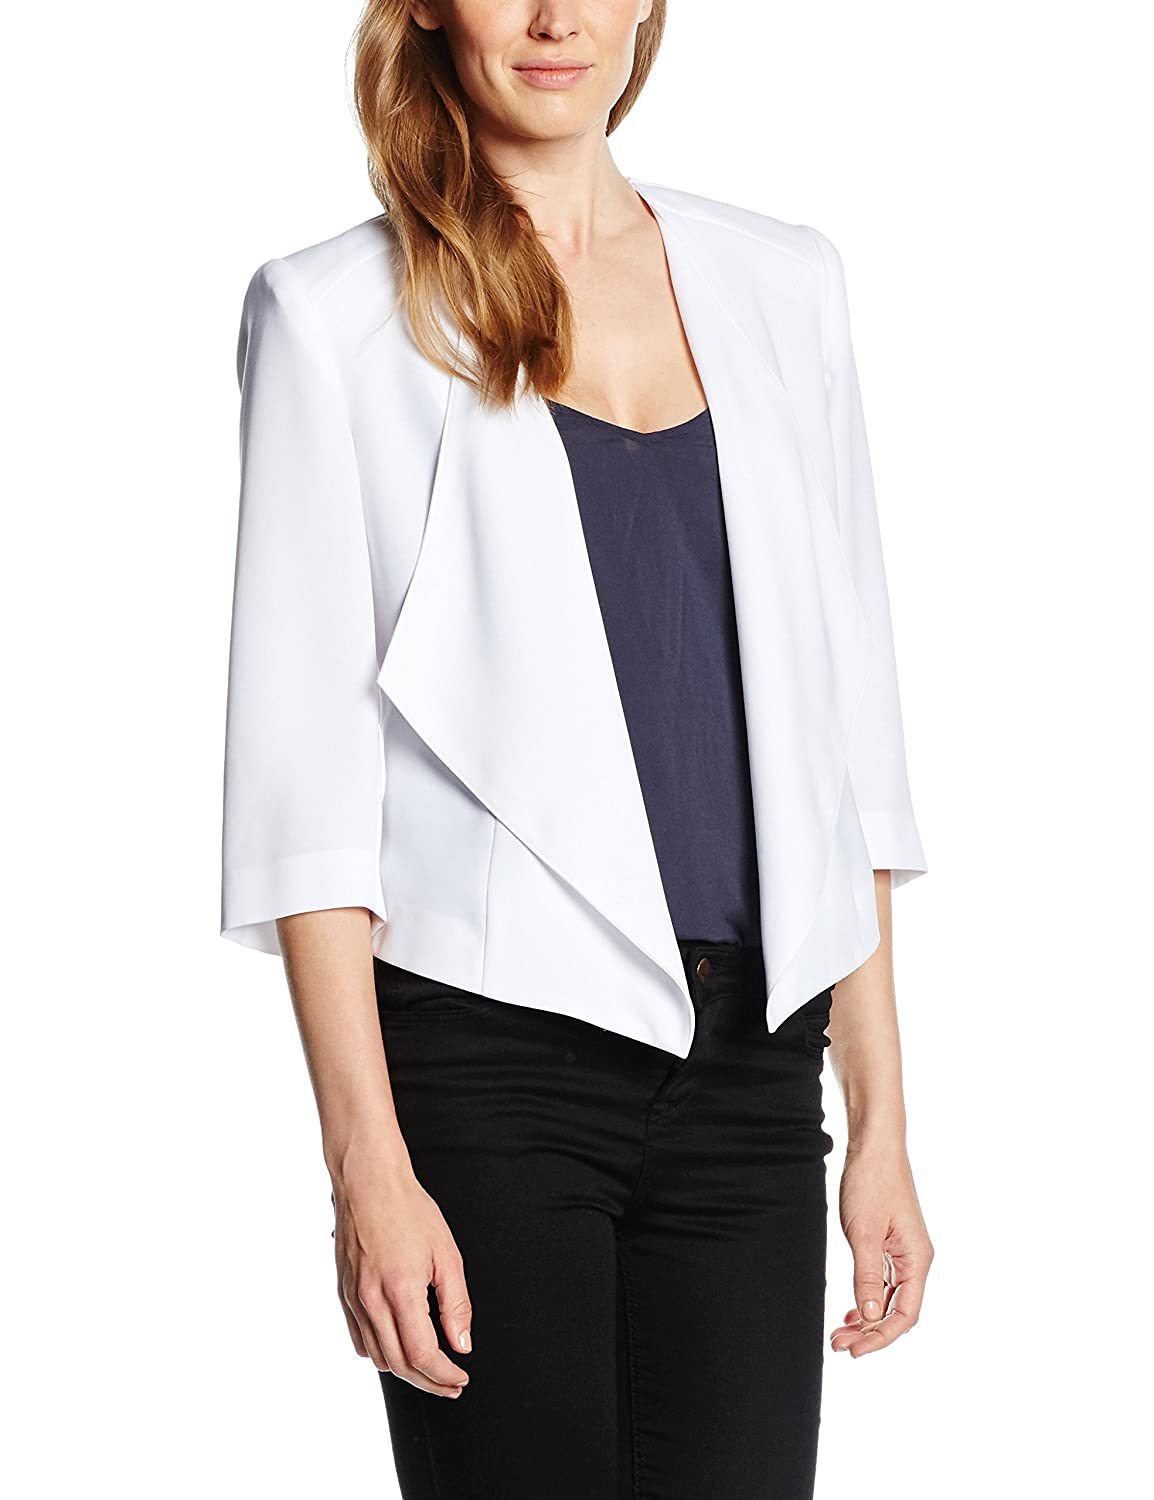 Betty Barclay Damen Blazer 5074/1301